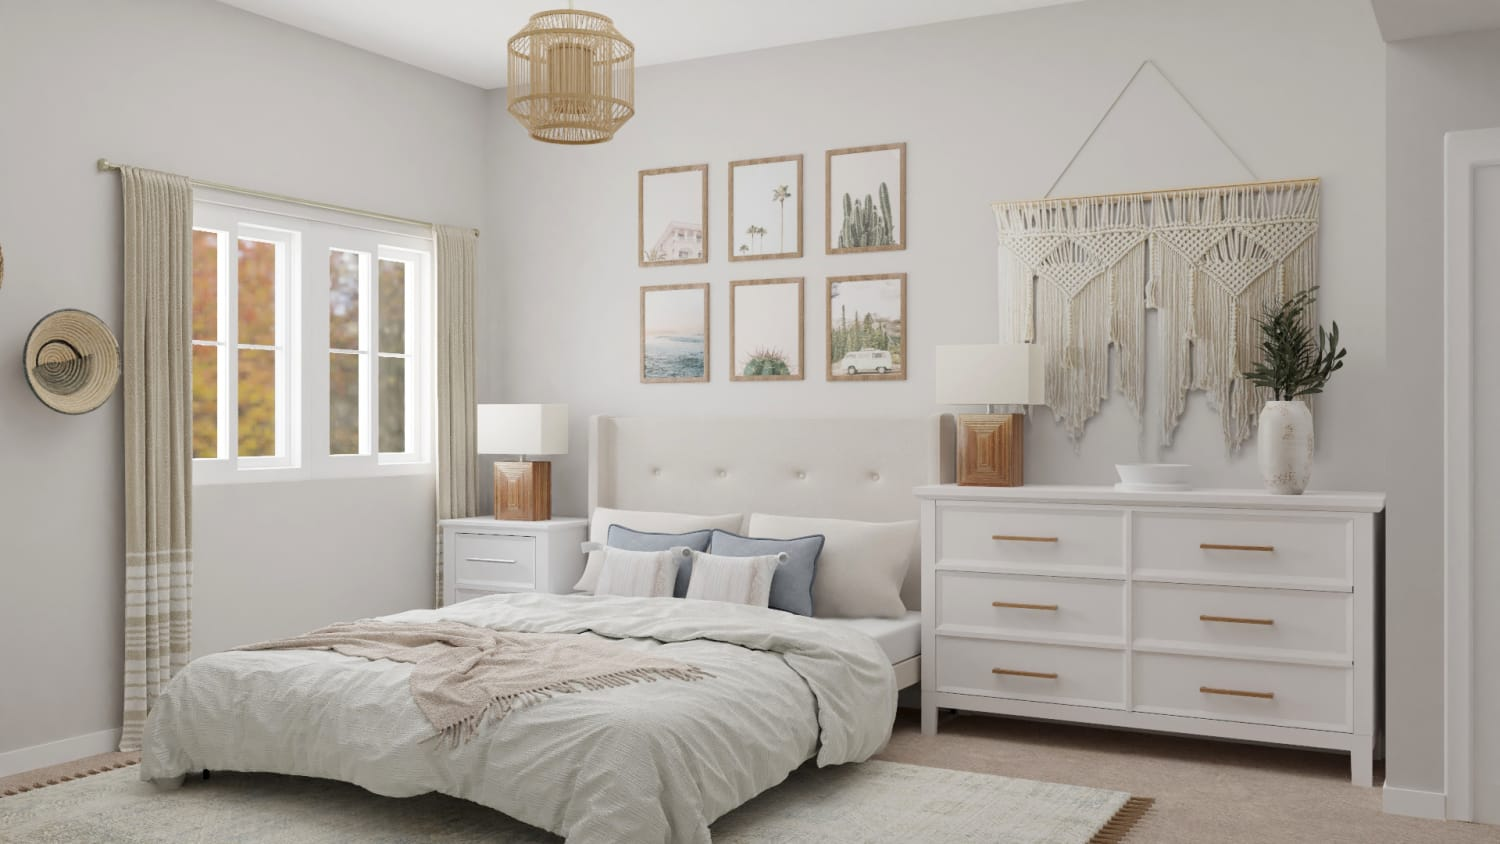 A Dreamy Bohemian Small Bedroom in Neutral Tones Design By Spacejoy